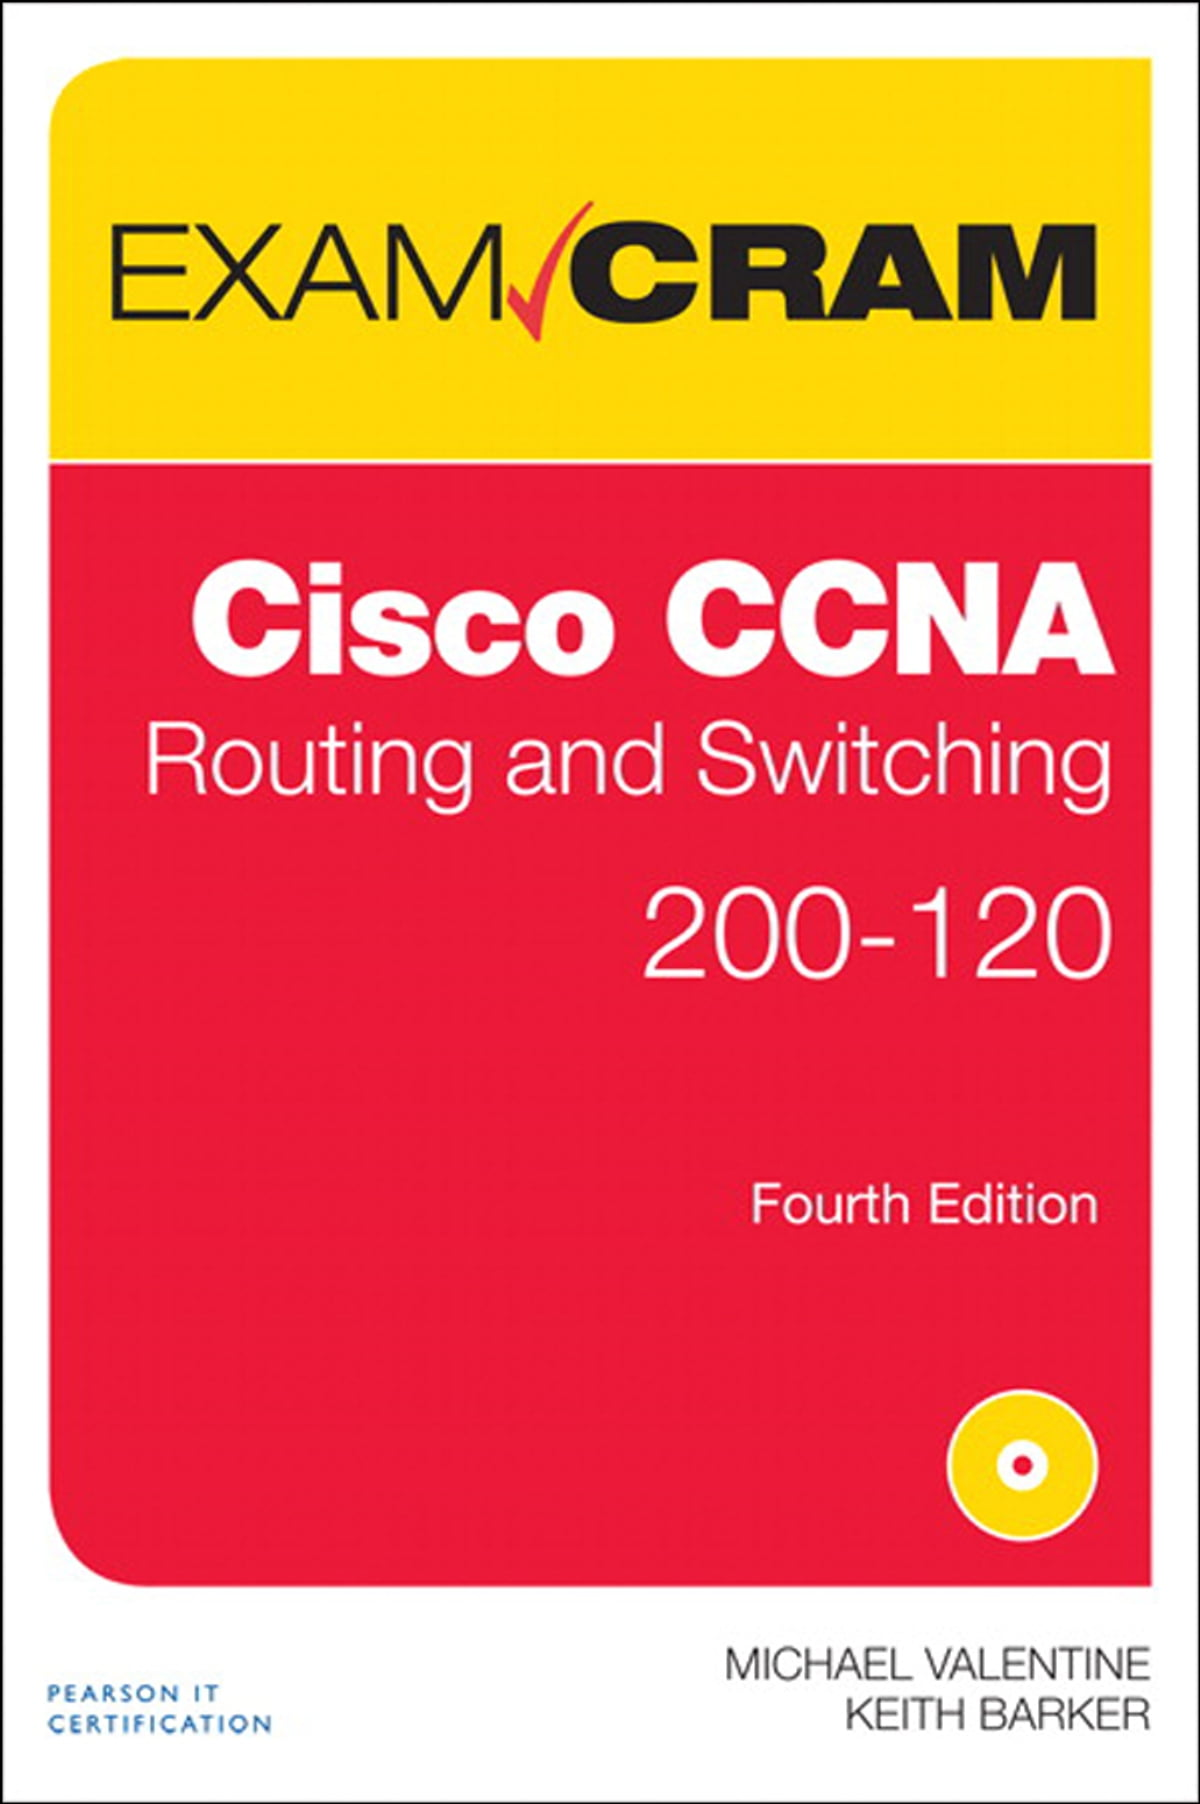 Cbt Nuggets Jeremy Ccna Lab Guide Ebook Porsche 1973 1914 Fuse Box Diagram Array Routing And Switching 200 120 Exam Cram Di Michael Rh Kobo Com